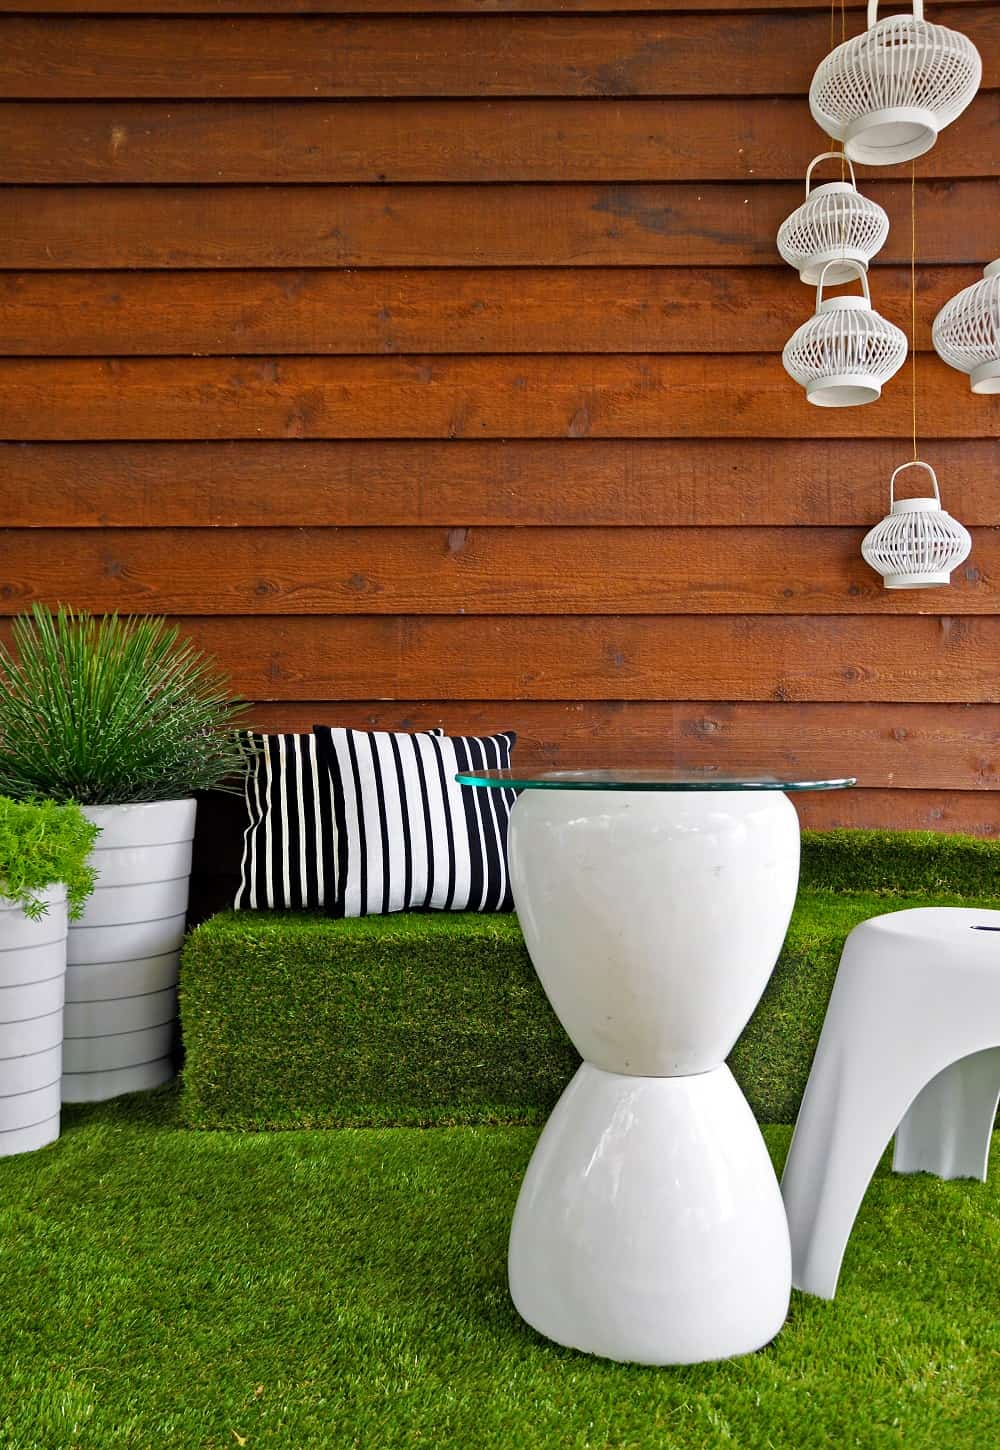 How To Select The Right Artificial Grass For Your House? Artificial Grass at the backyard patio